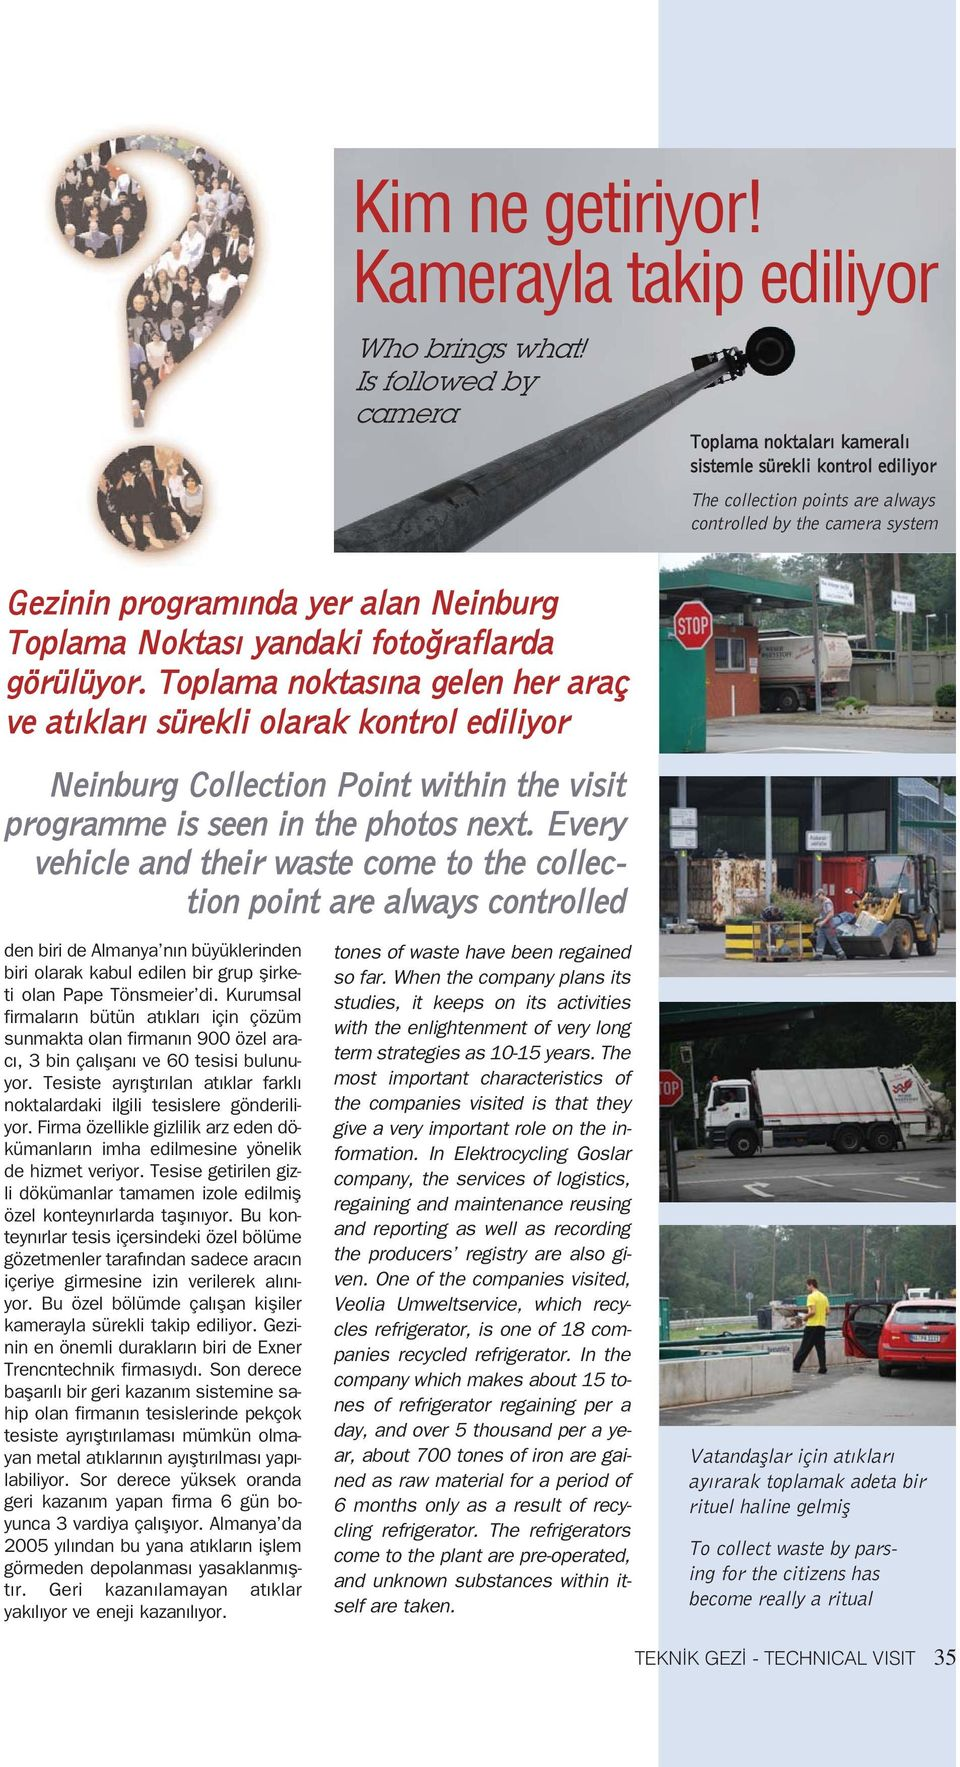 Every vehicle and their waste come to the collection point are always controlled Toplama noktalar kameral sistemle sürekli kontrol ediliyor The collection points are always controlled by the camera